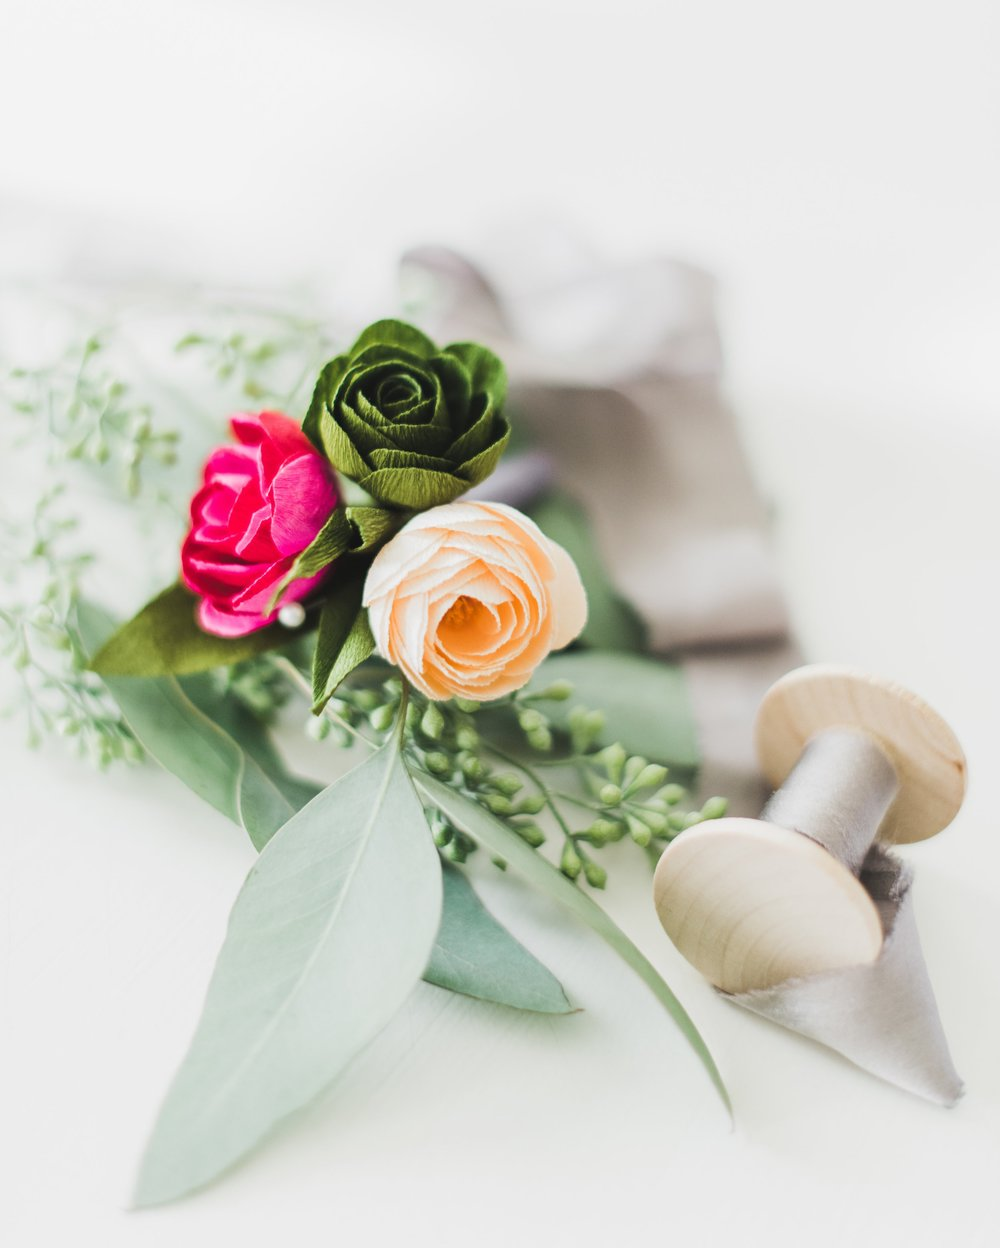 Boutonnières & Corsages - Match your flowers with other accessories like boutonnières and corsages. All in your favorite color.